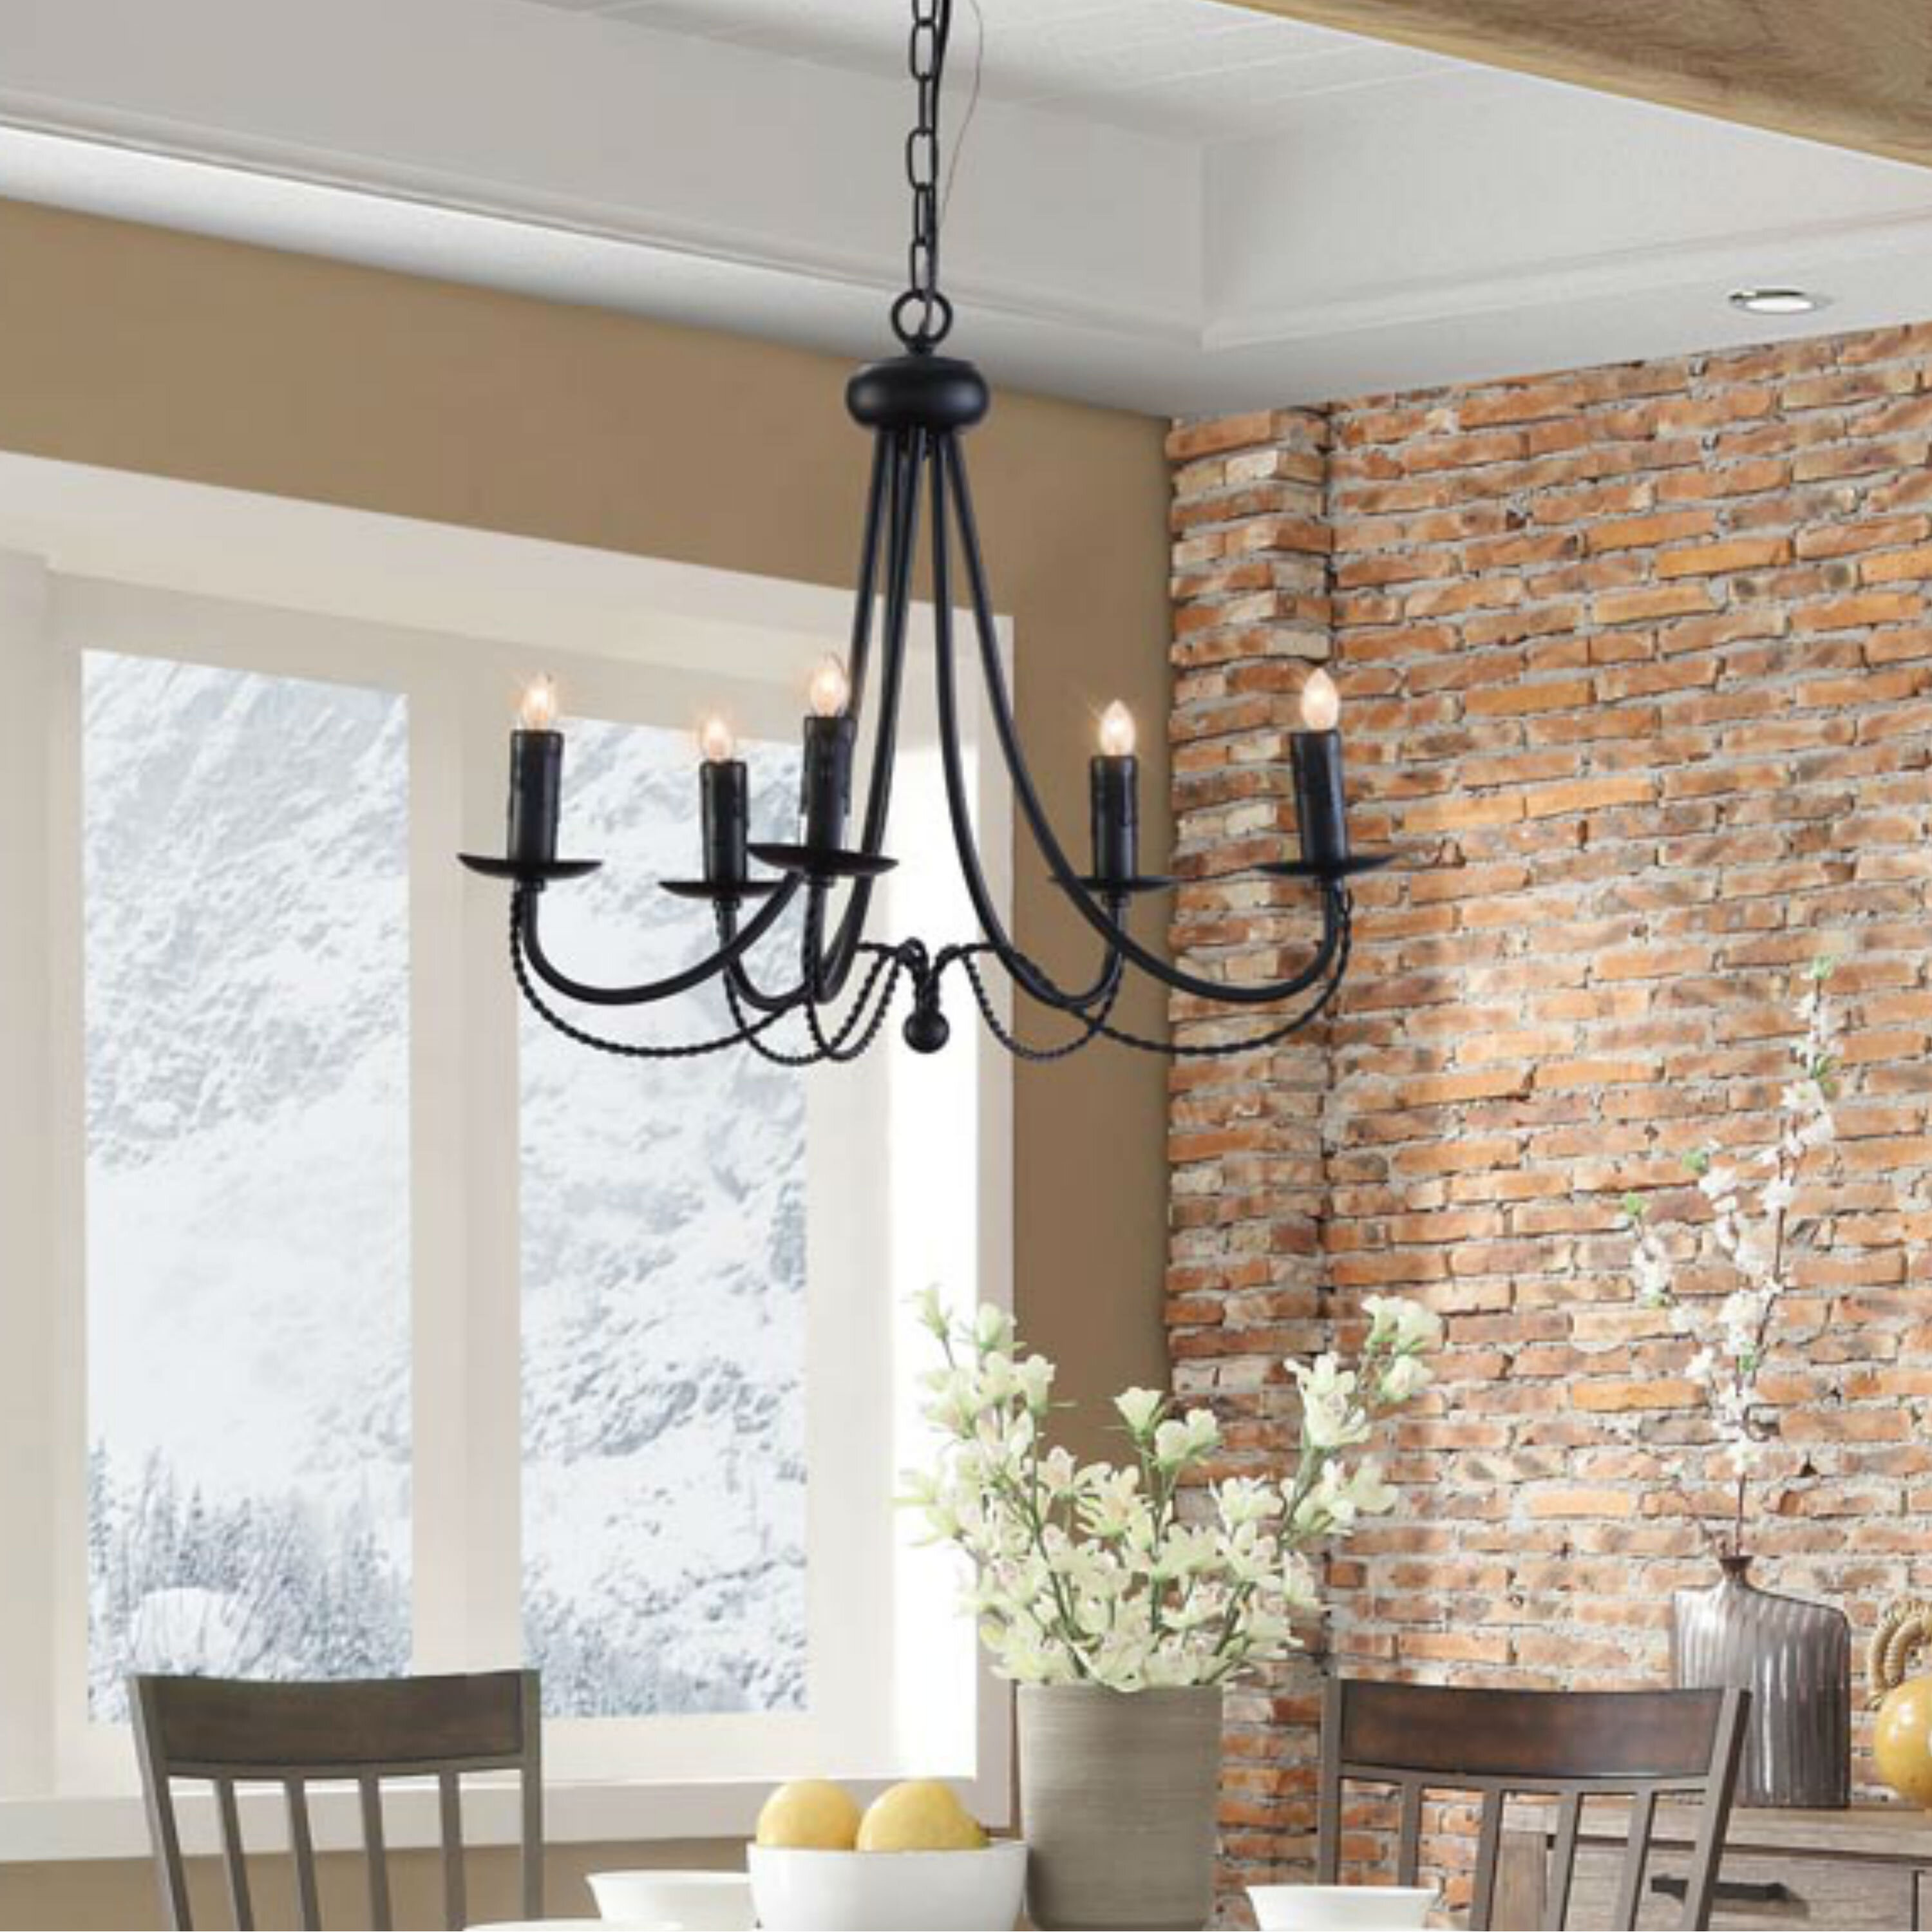 5 Or More Tiers Cottage Country Ceiling Lights You Ll Love In 2021 Wayfair